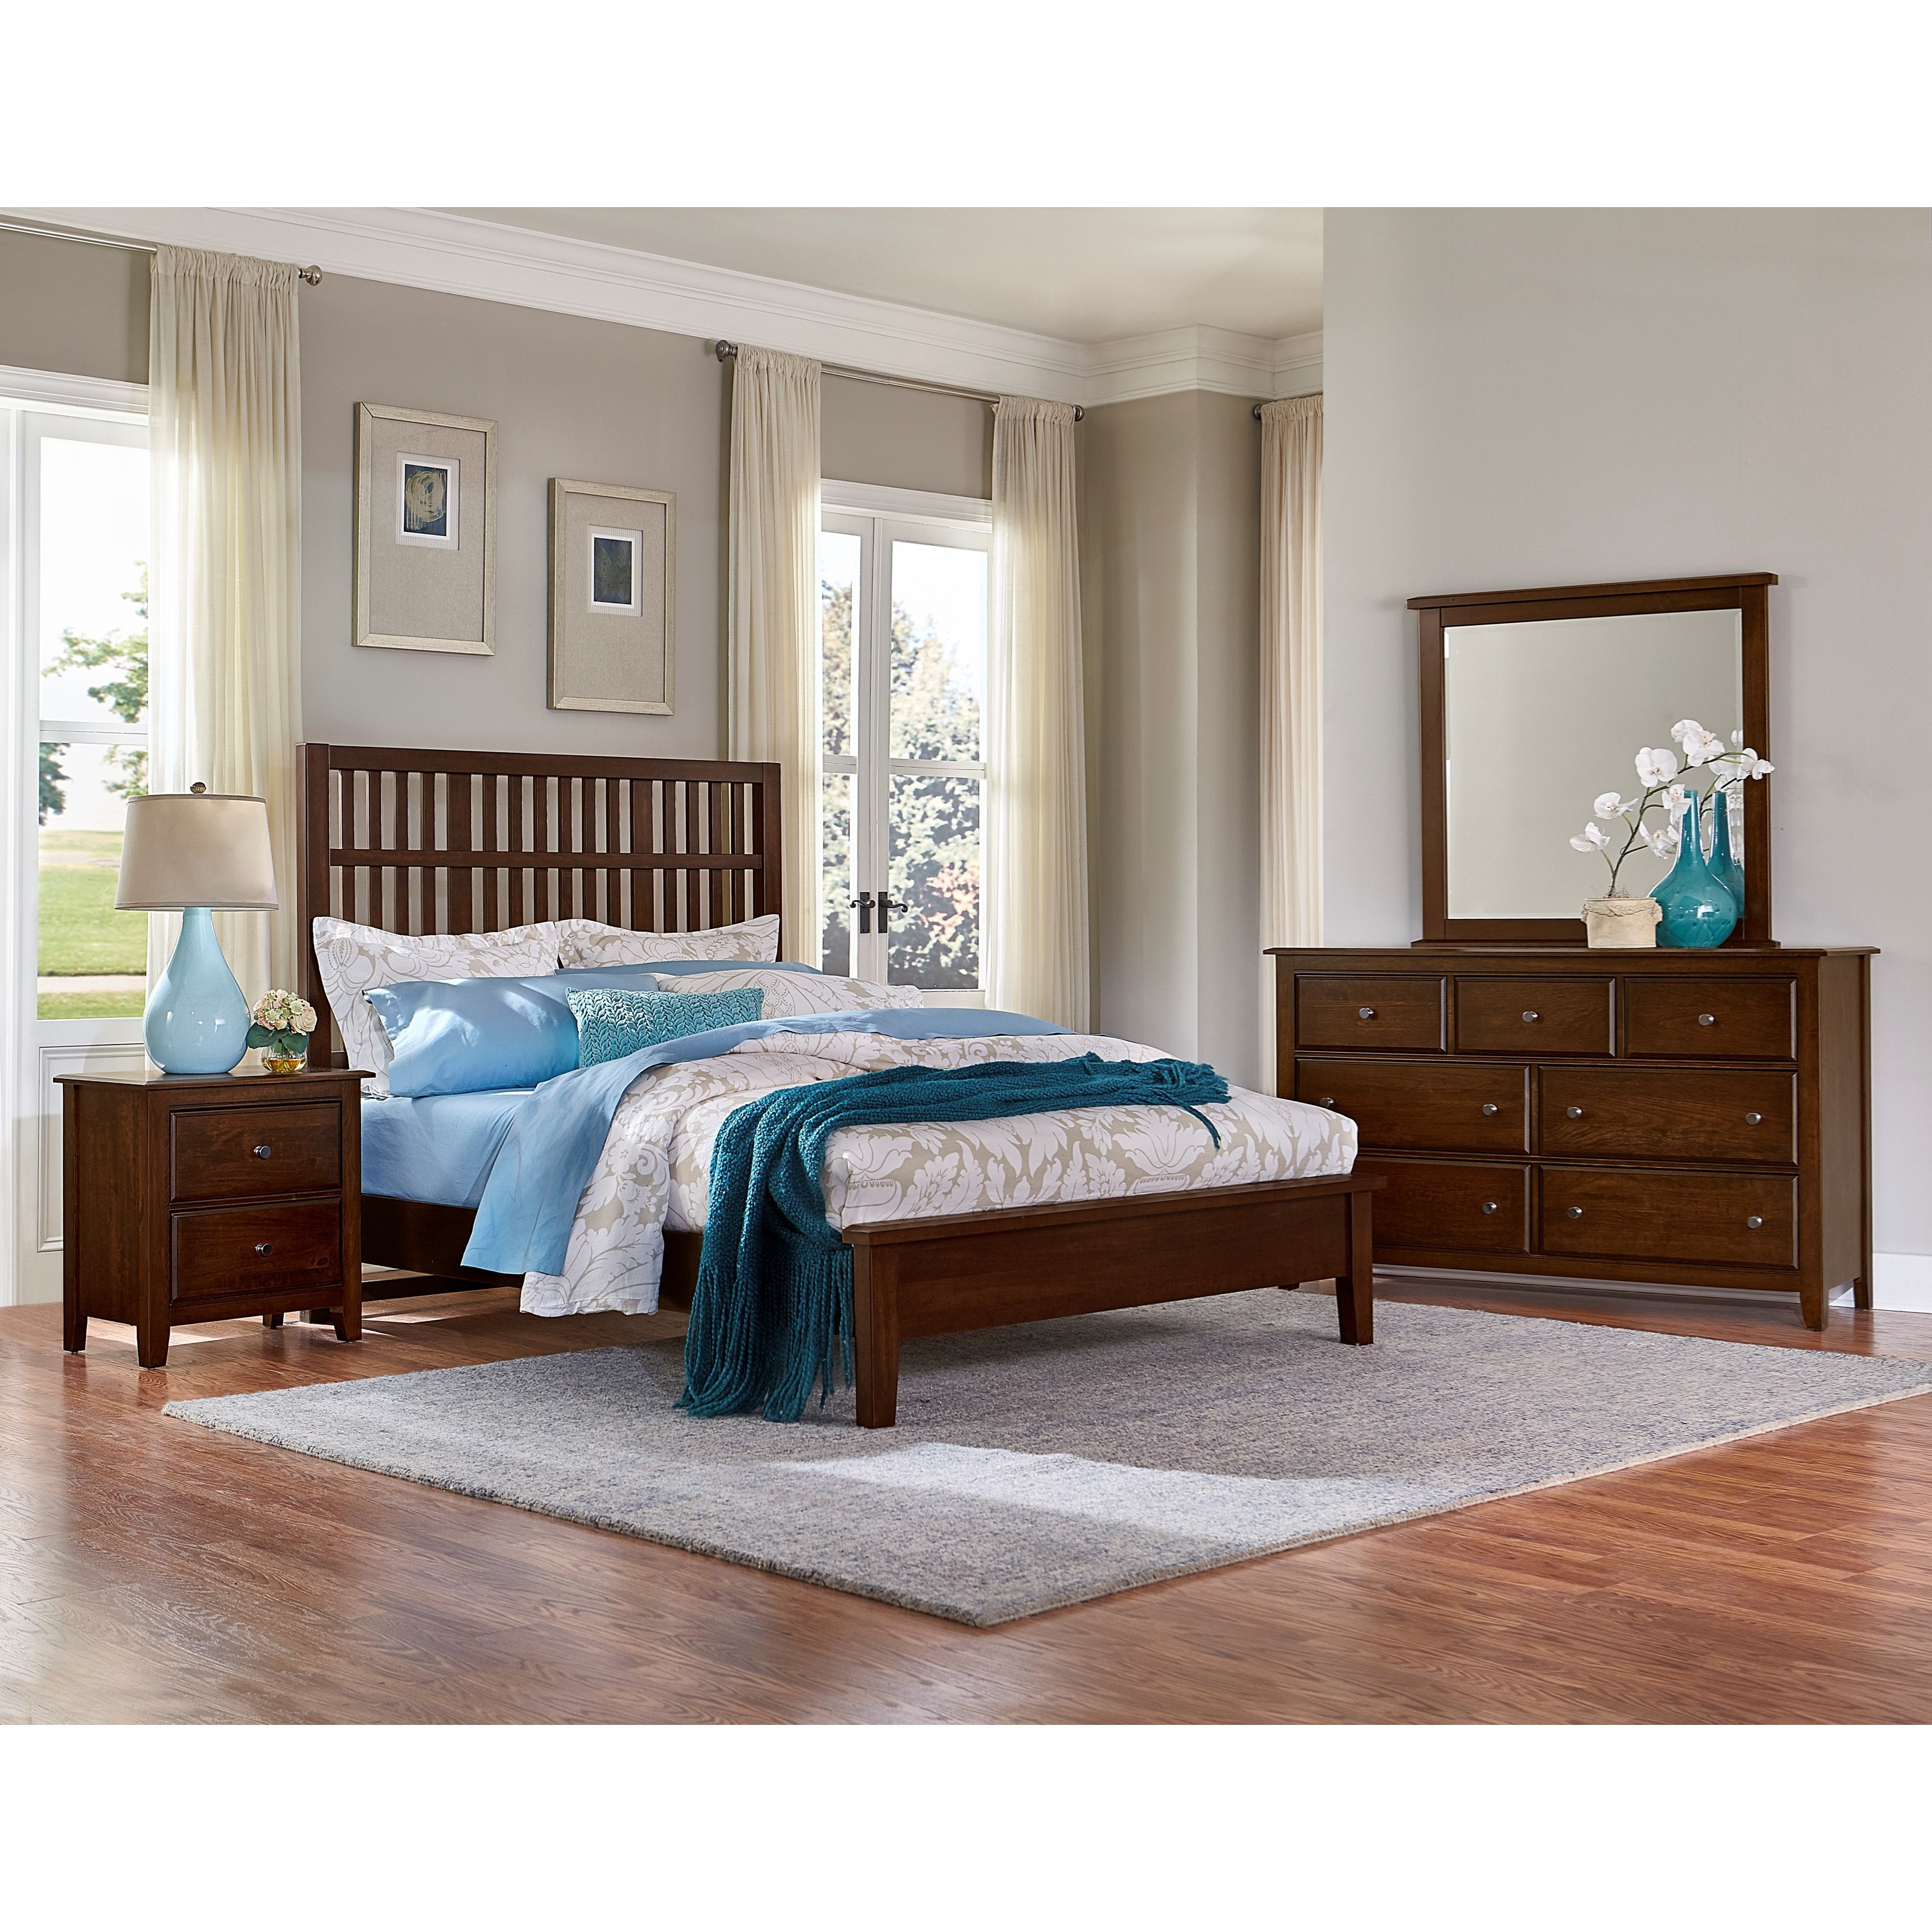 Artisan Choices King Bedroom Group by Artisan & Post by Vaughan Bassett at Becker Furniture